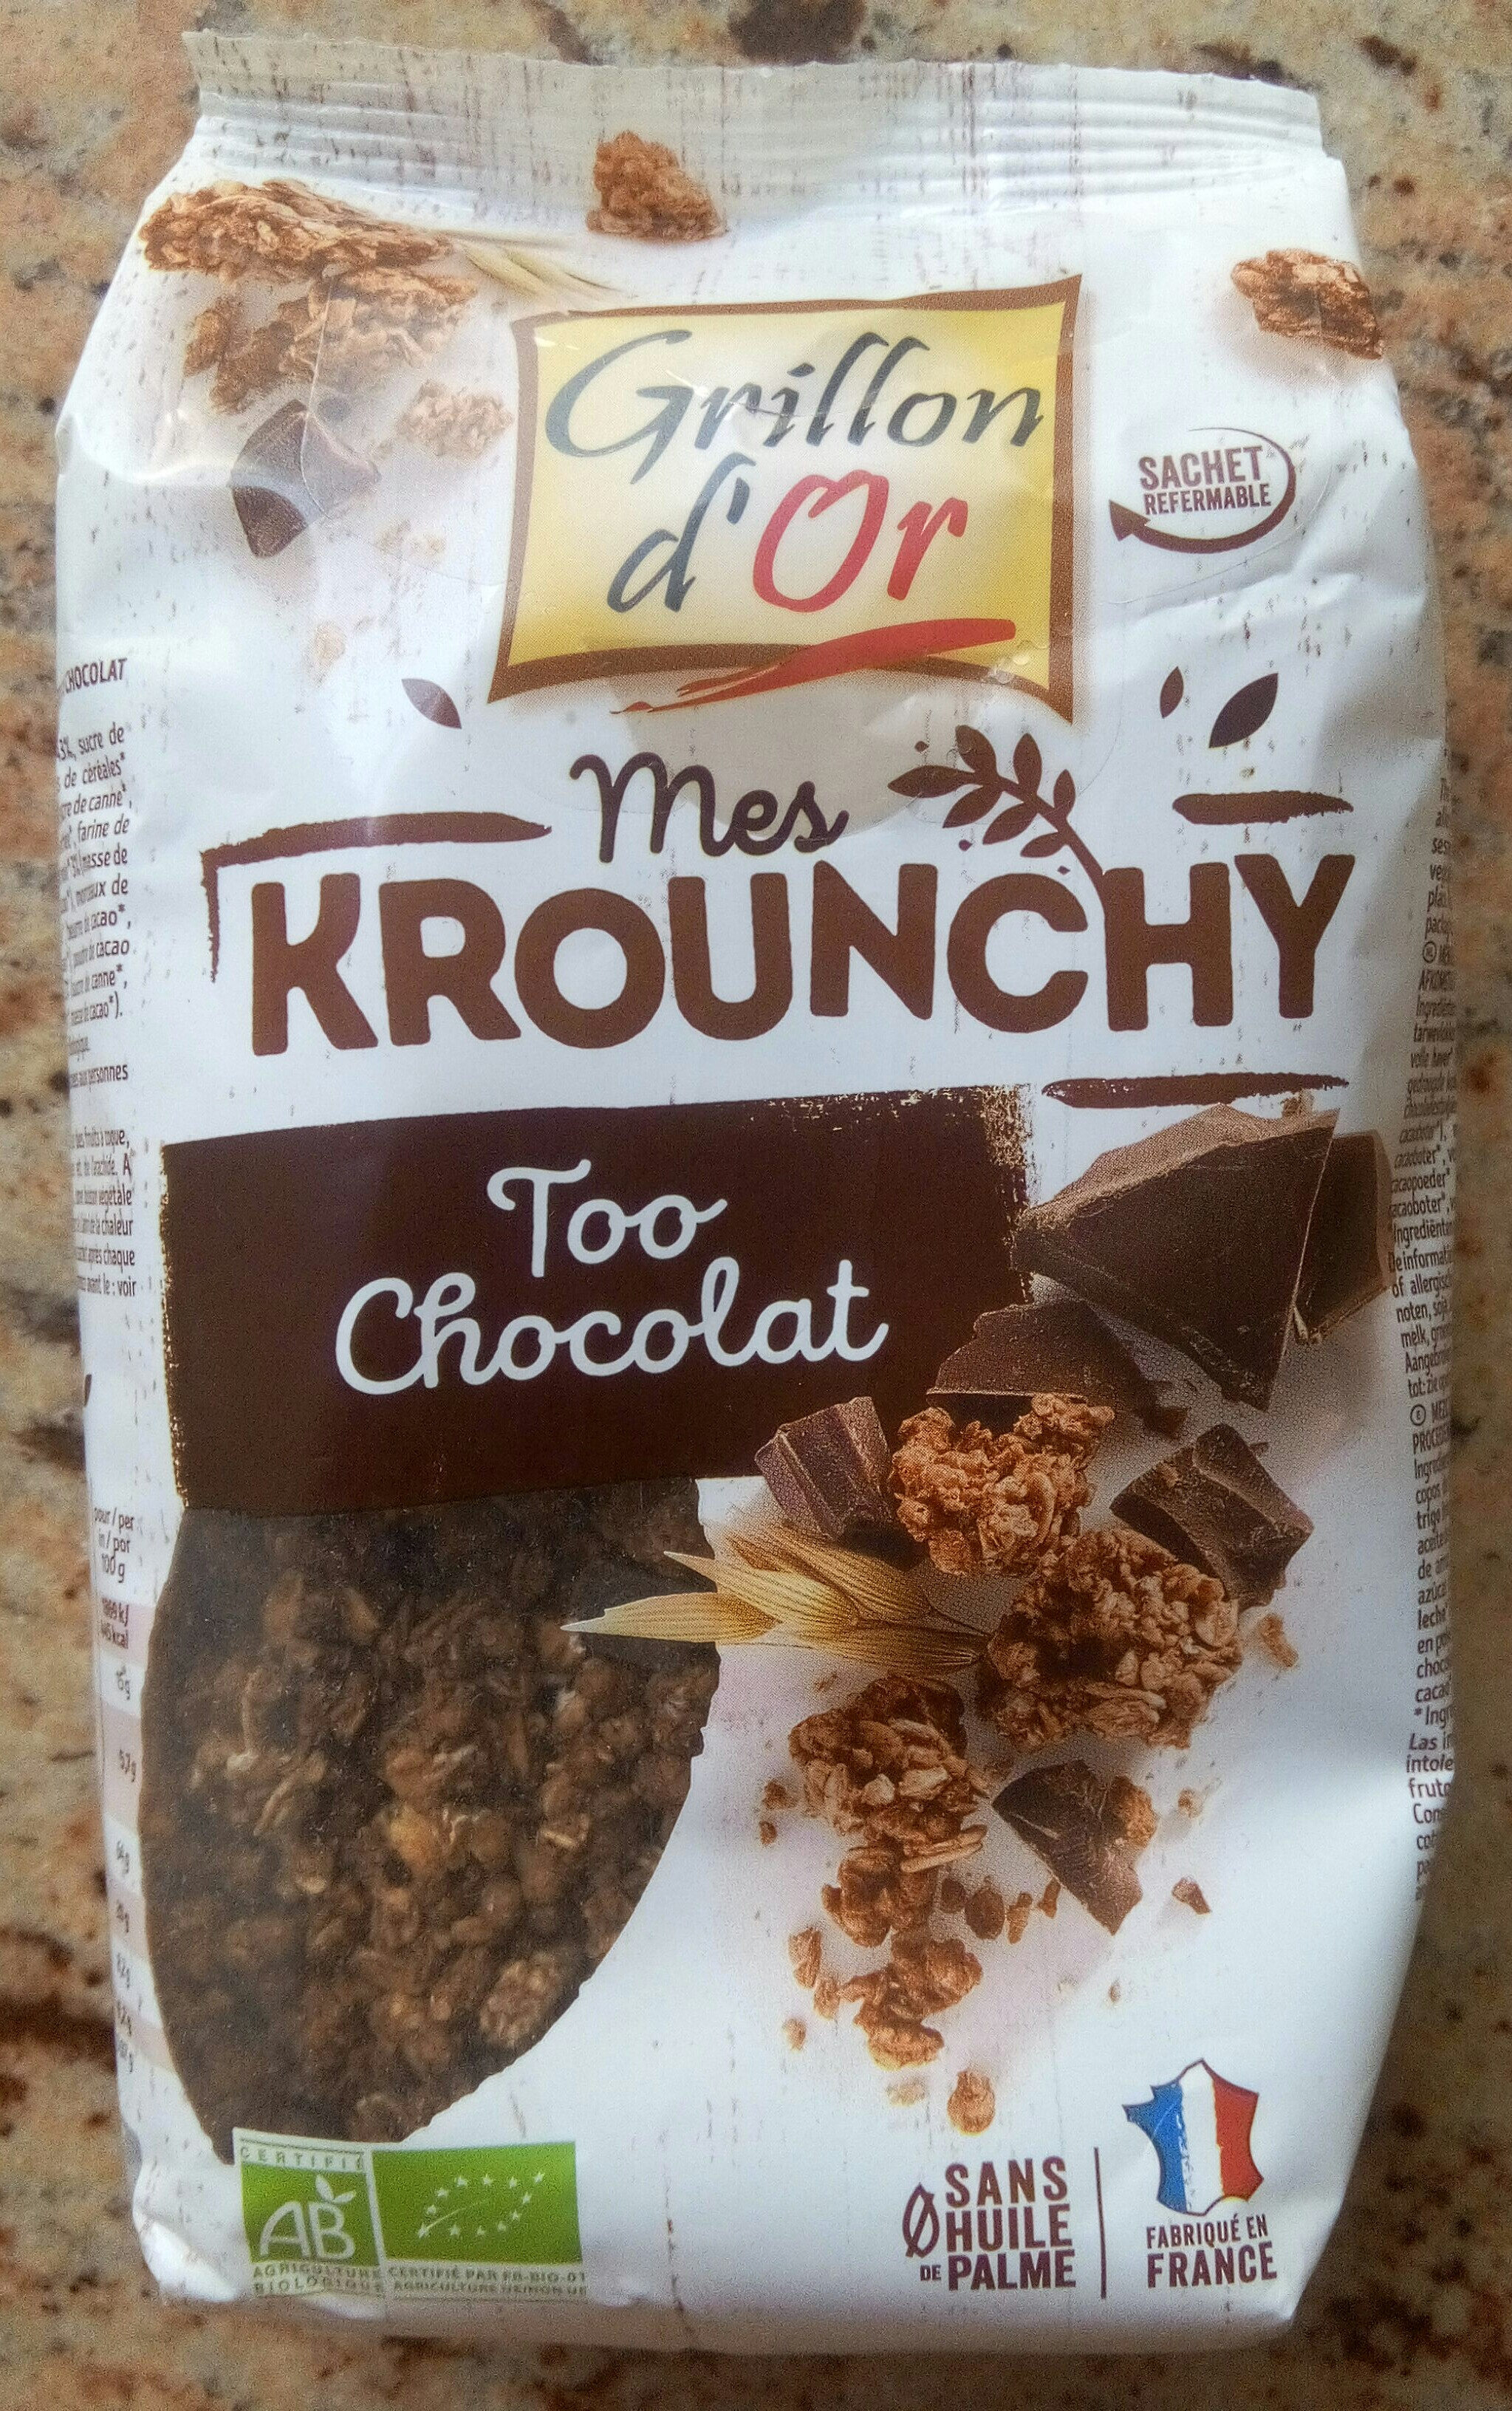 Krounchy too chocolat - Product